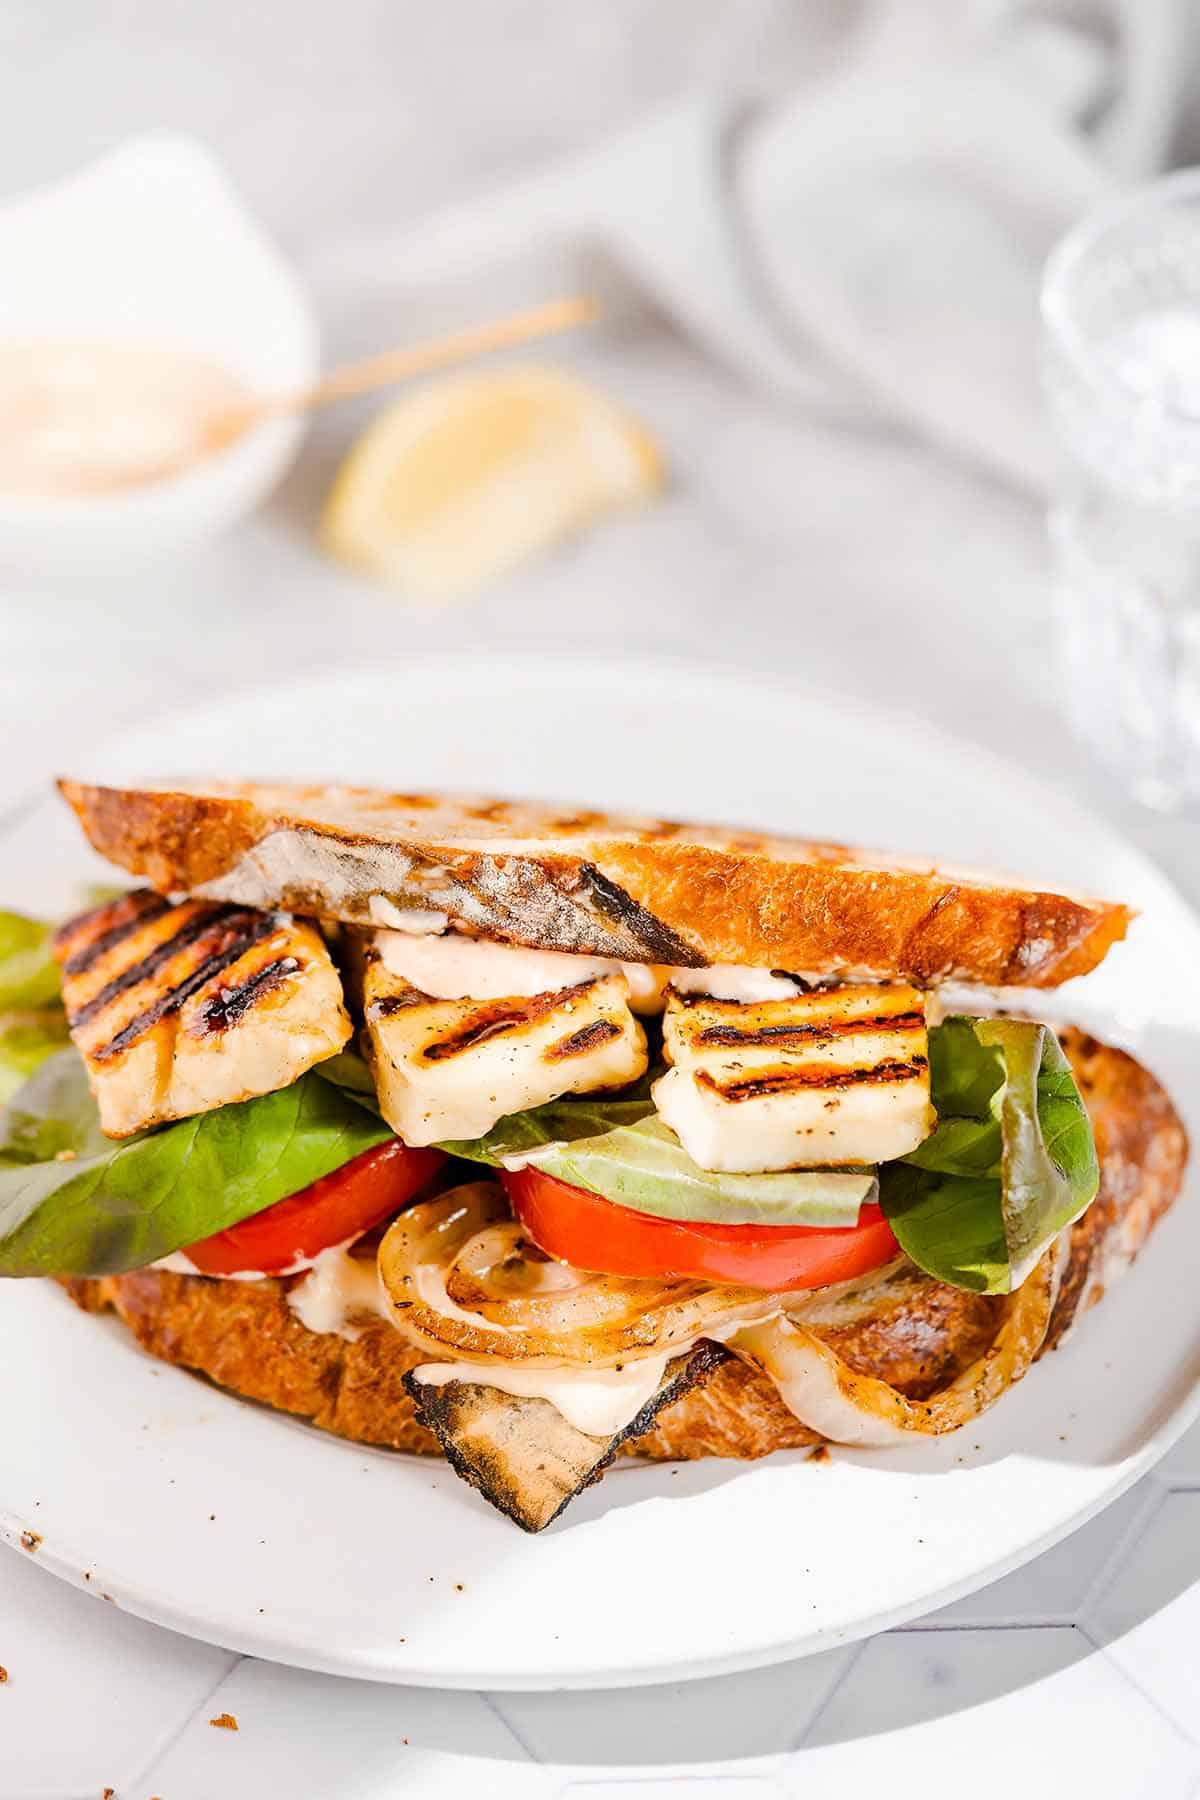 halloumi sandwich on white plate with lemon and mayo on the side